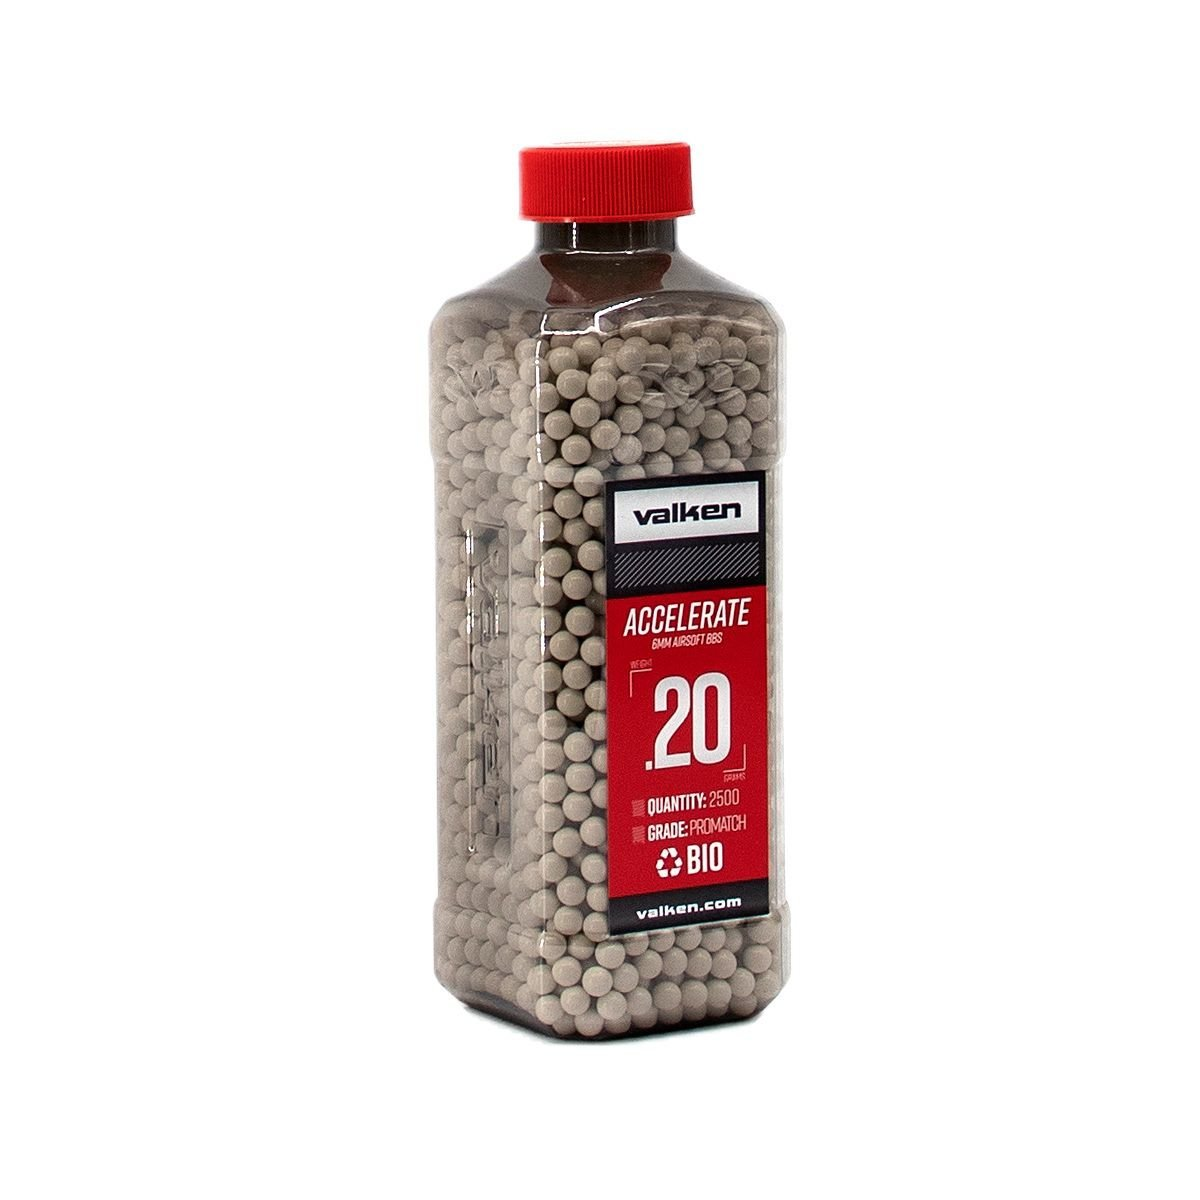 View larger image of Valken Accelerate ProMatch 0.20g 2,500ct Biodegradable Airsoft BBs